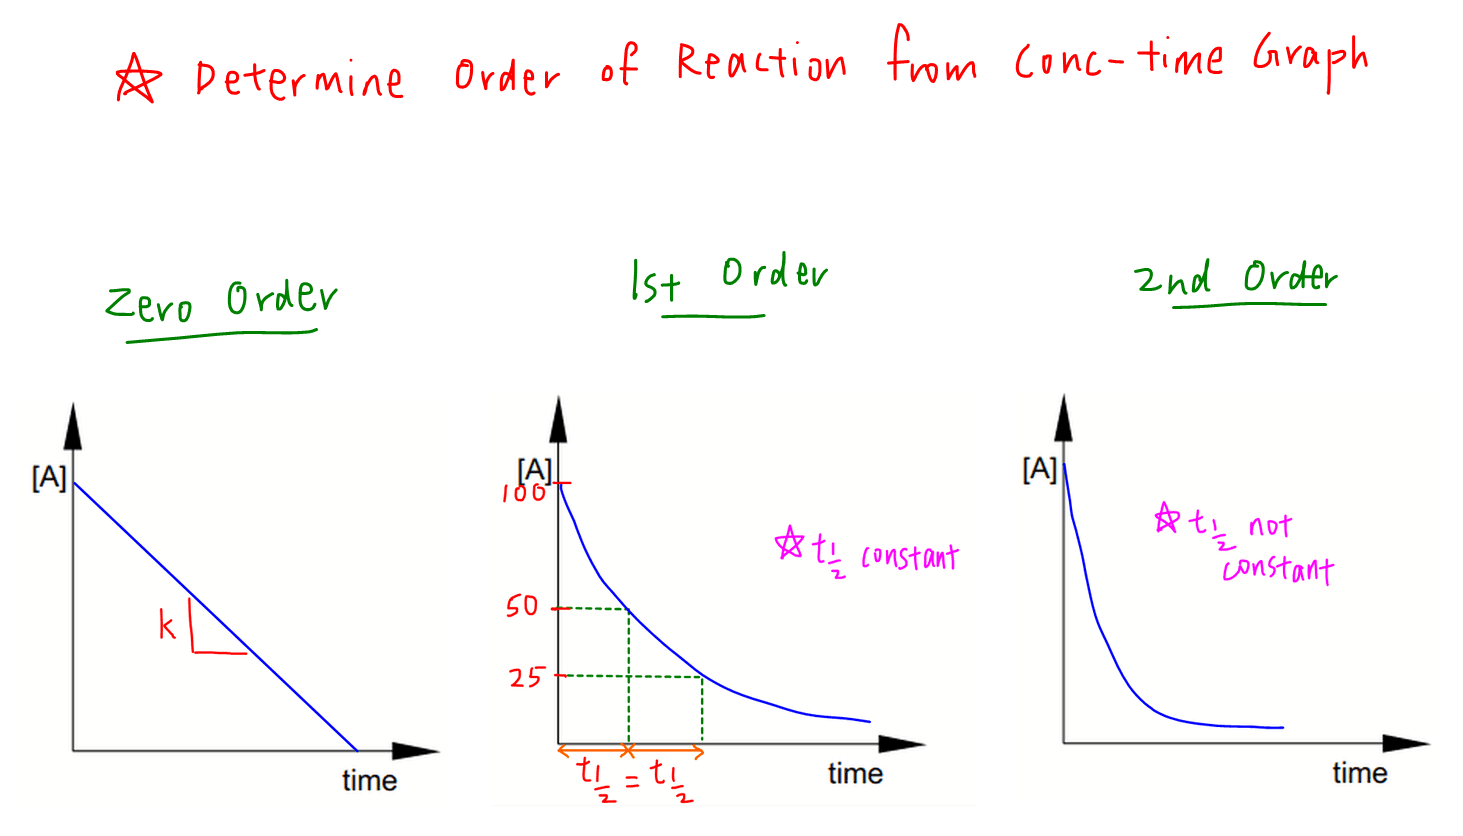 rate equation and order of reaction determine order from concentration time graph